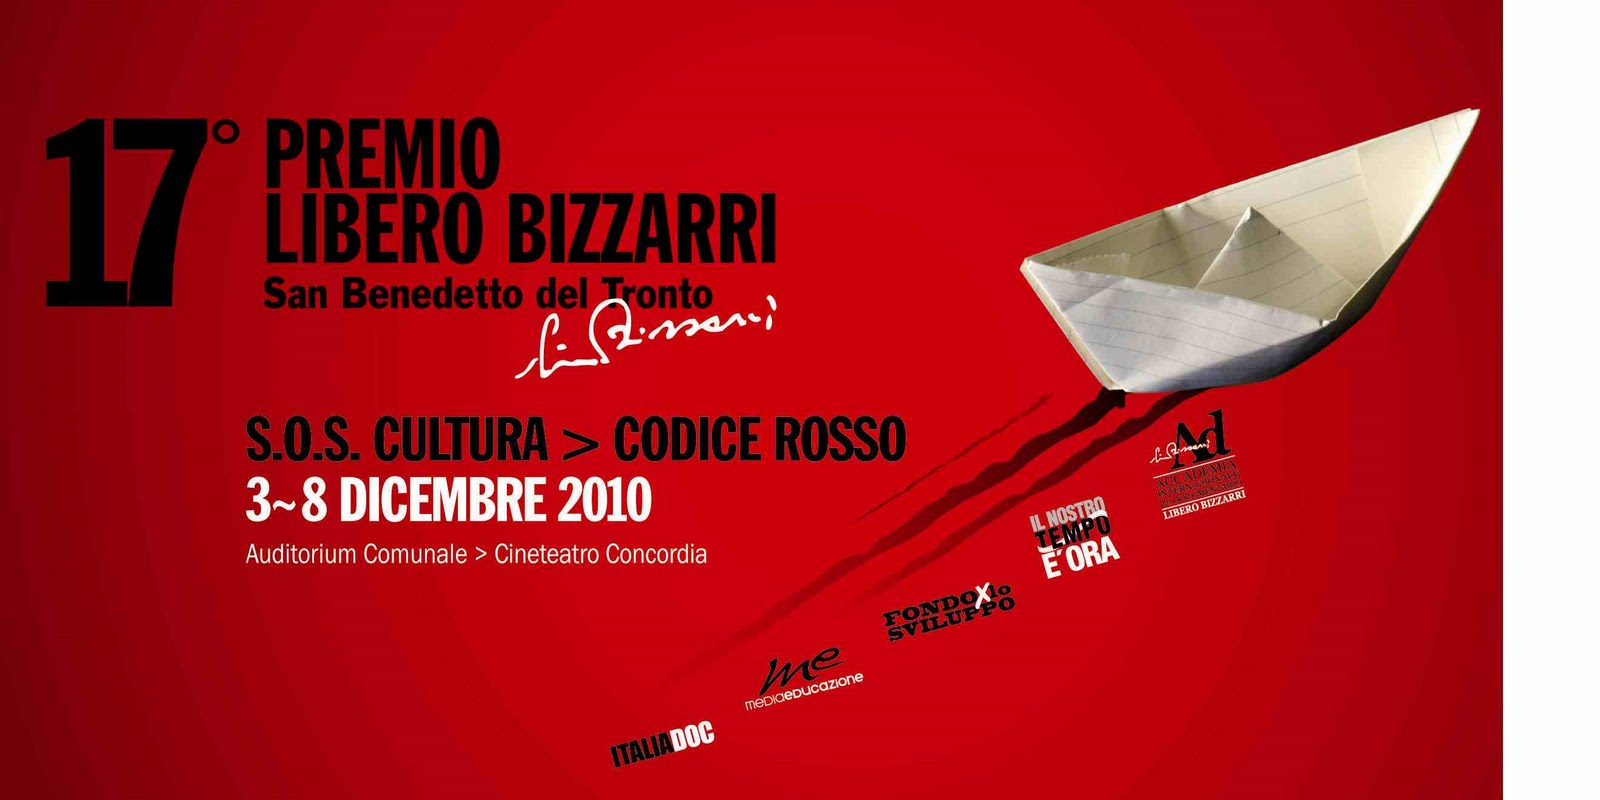 Premio Libero Bizzarri